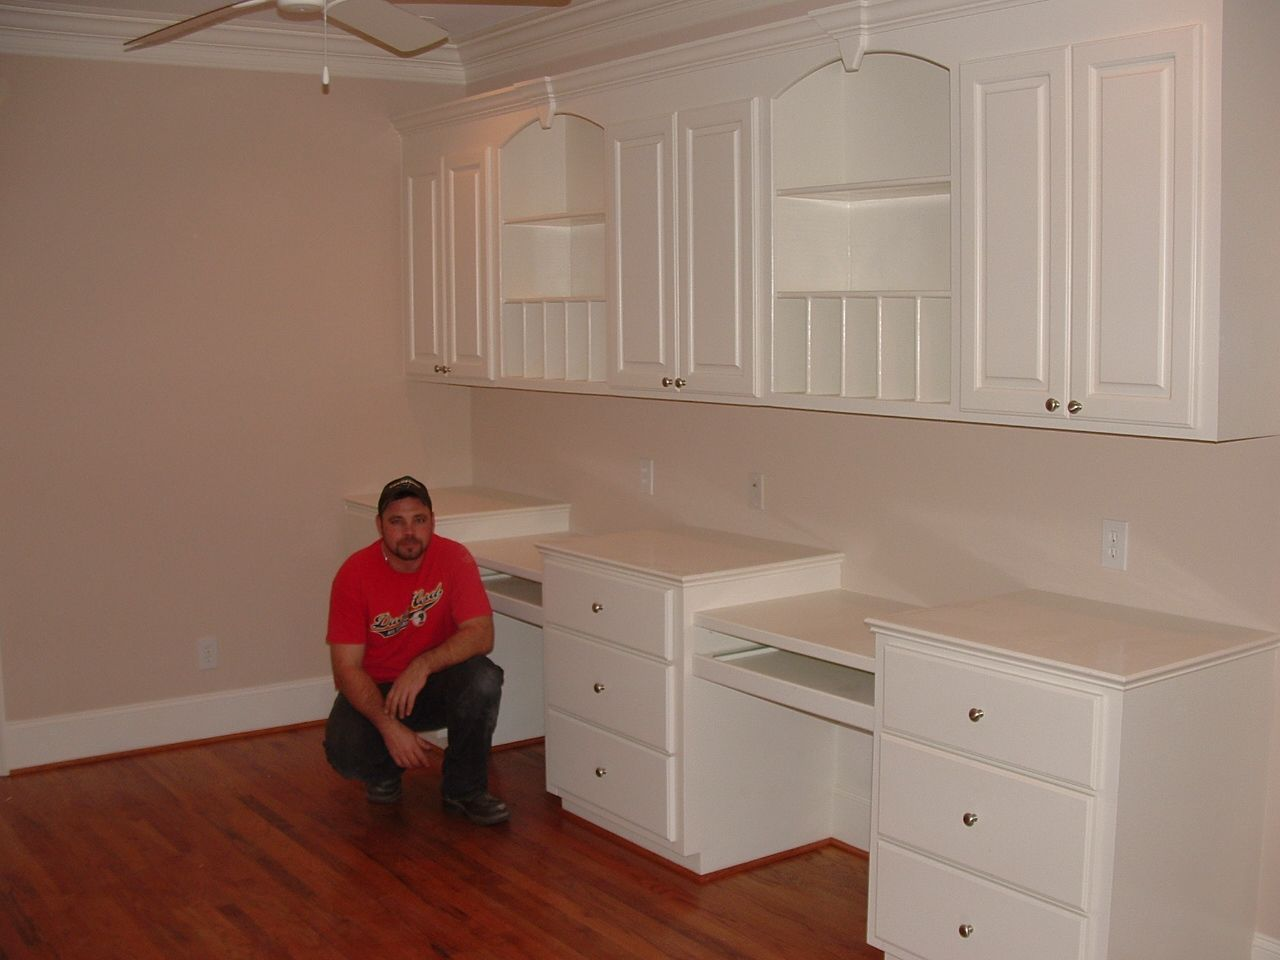 Base Cabinets For Kitchen Desk Most Of Residence The Cabinet Is Primary Furniture To Turn Old And Tainted